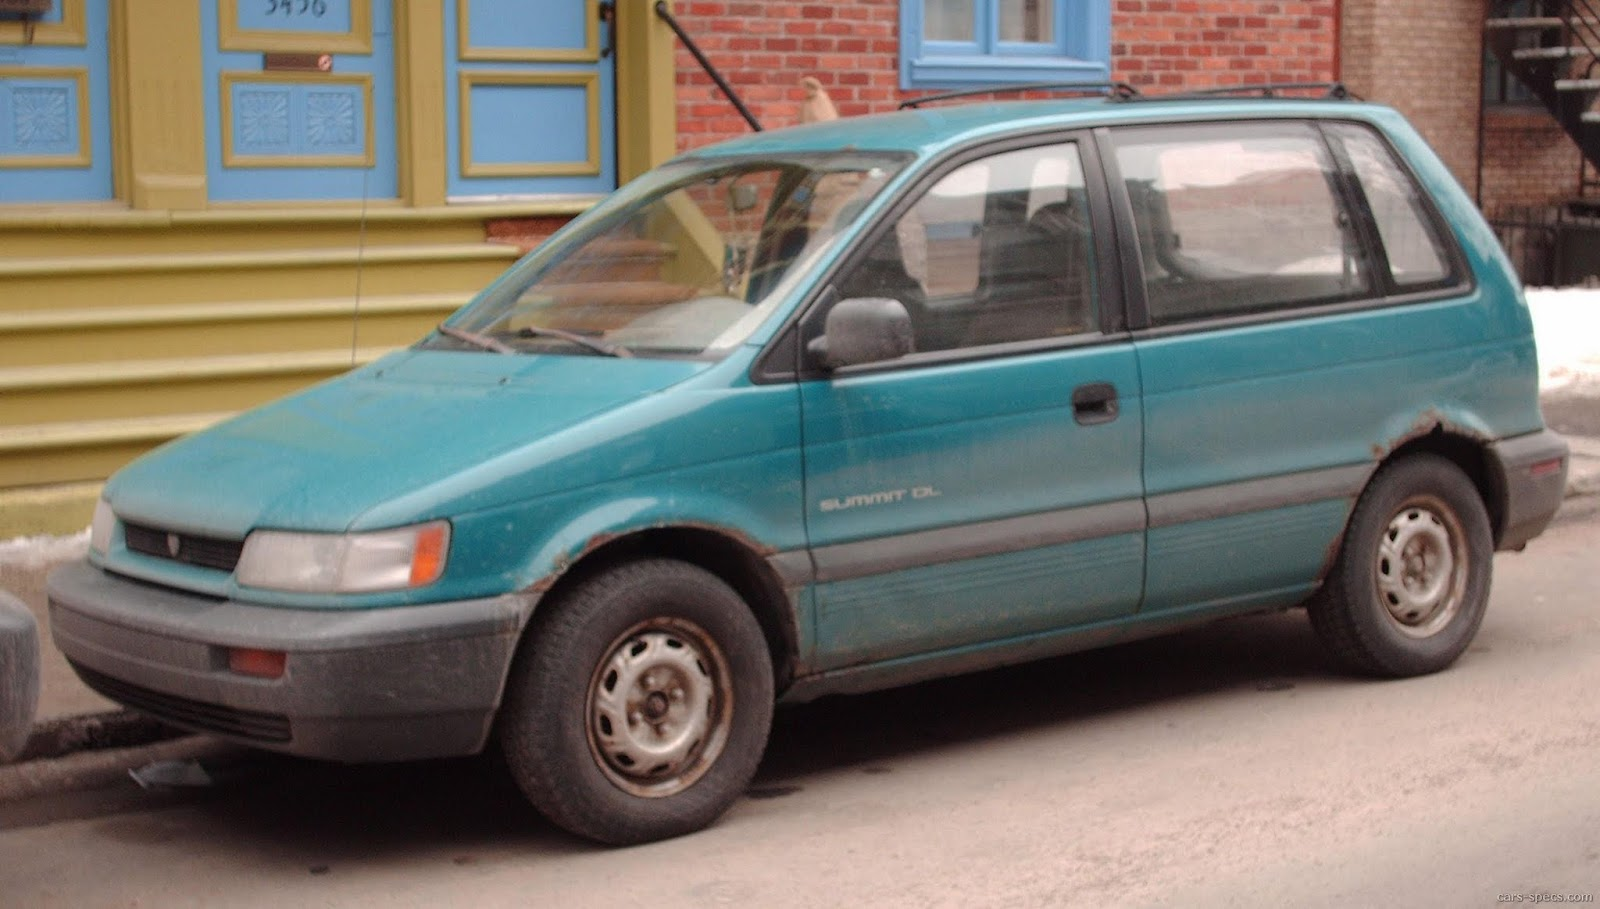 1996 Eagle Summit Wagon Specifications Pictures Prices